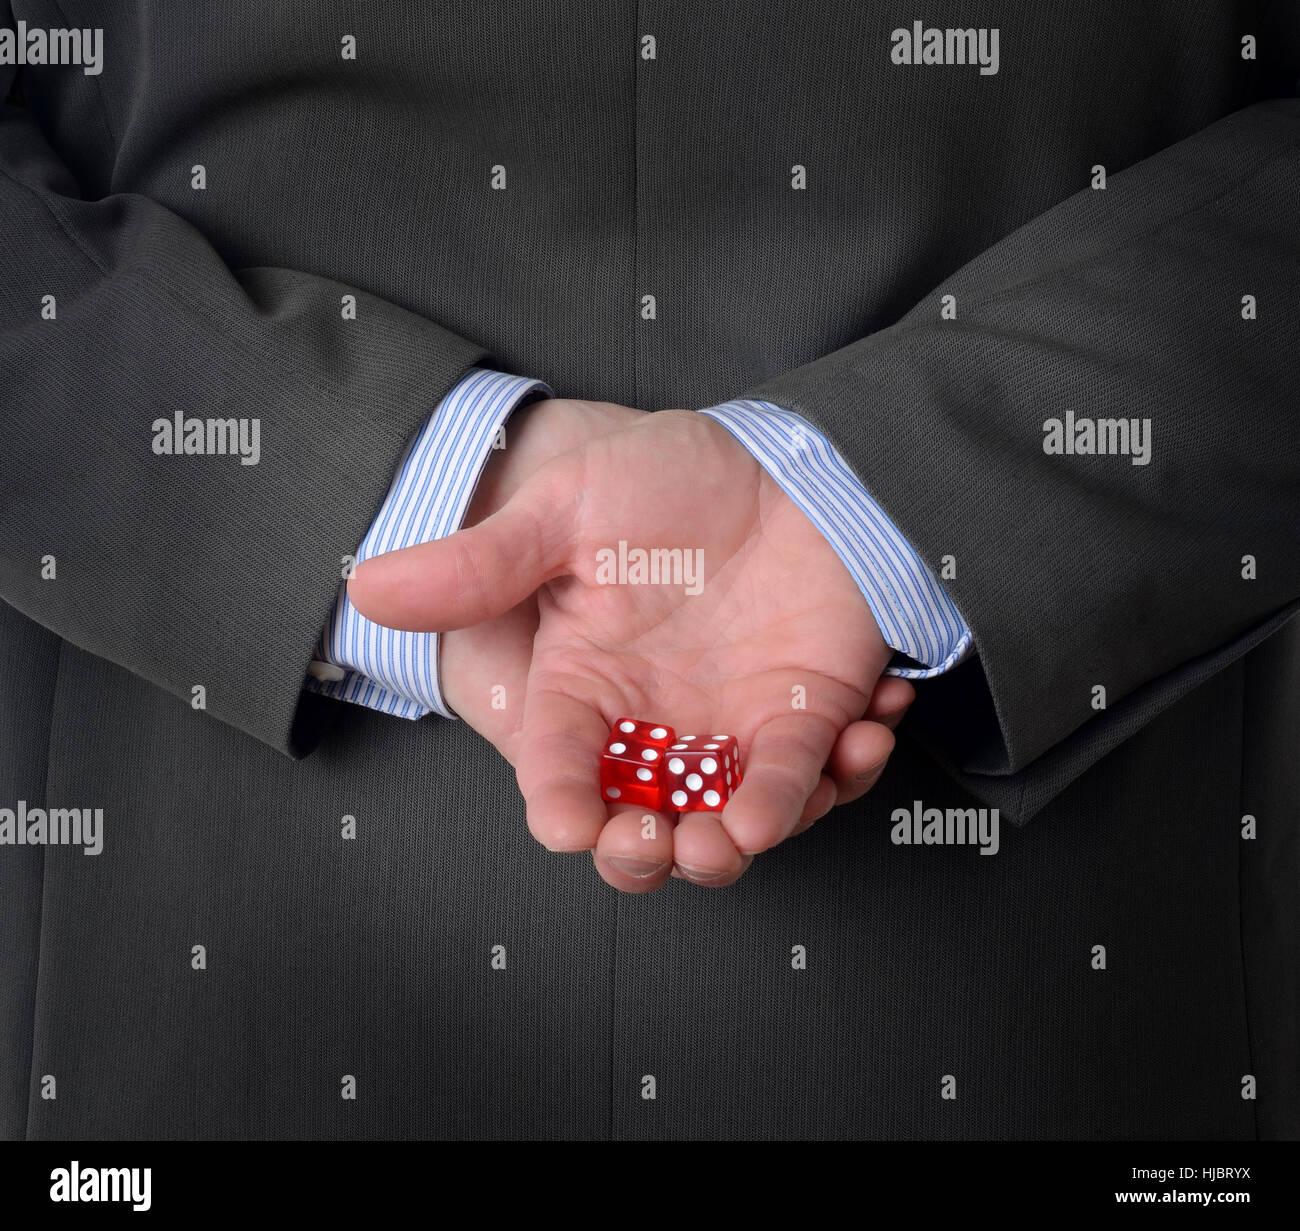 Man in suit with dice behind his back - Stock Image